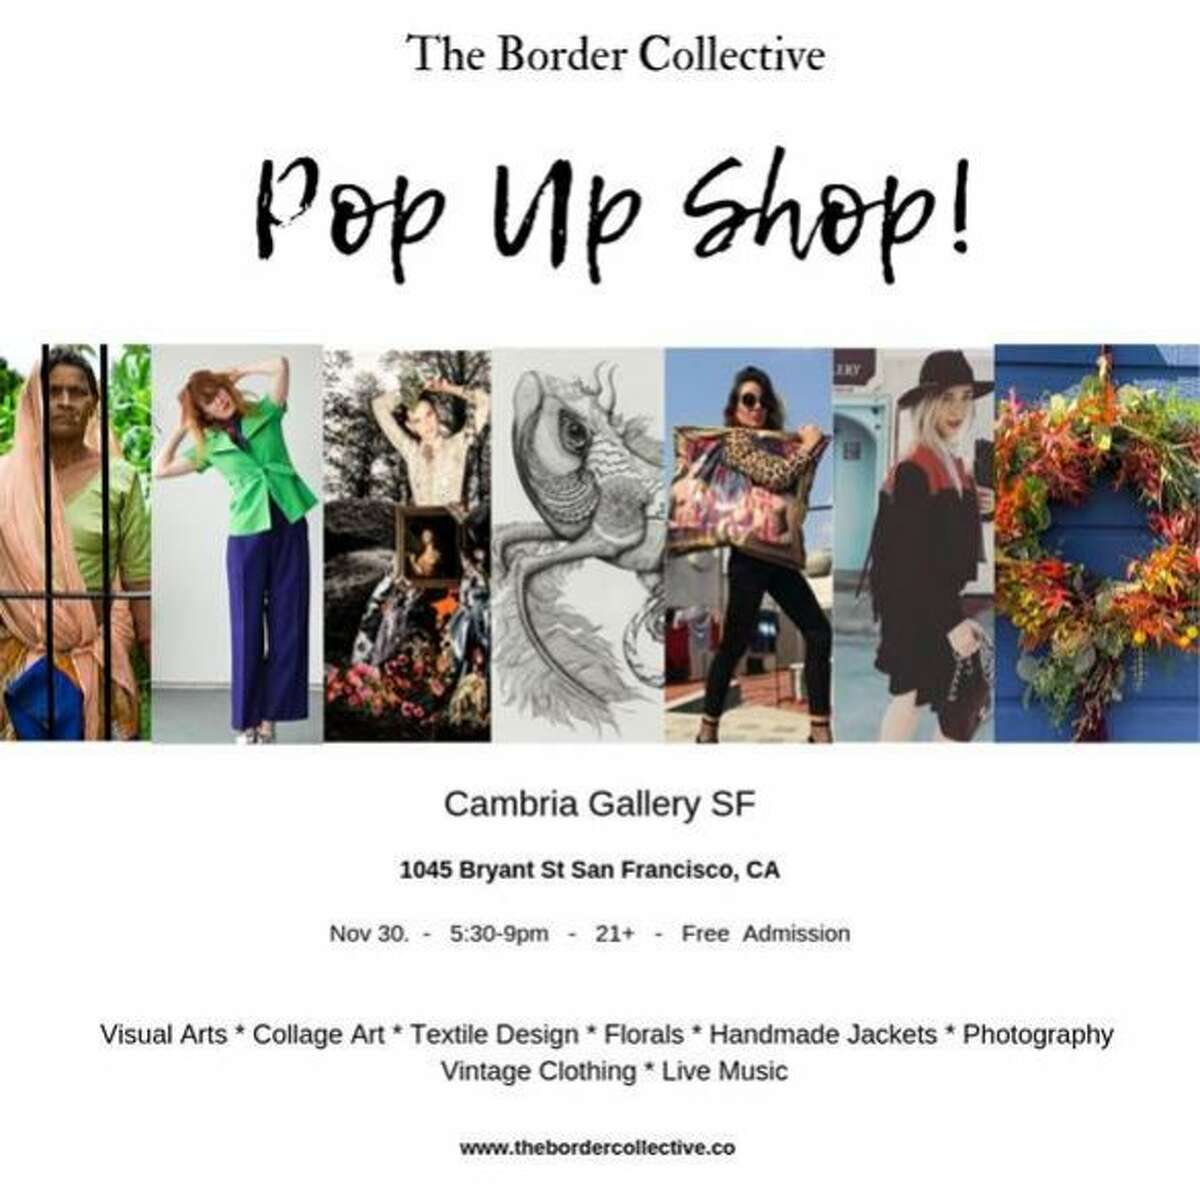 The Border Colletive is hosting their first holiday market at Cambria Gallery Nov. 30.